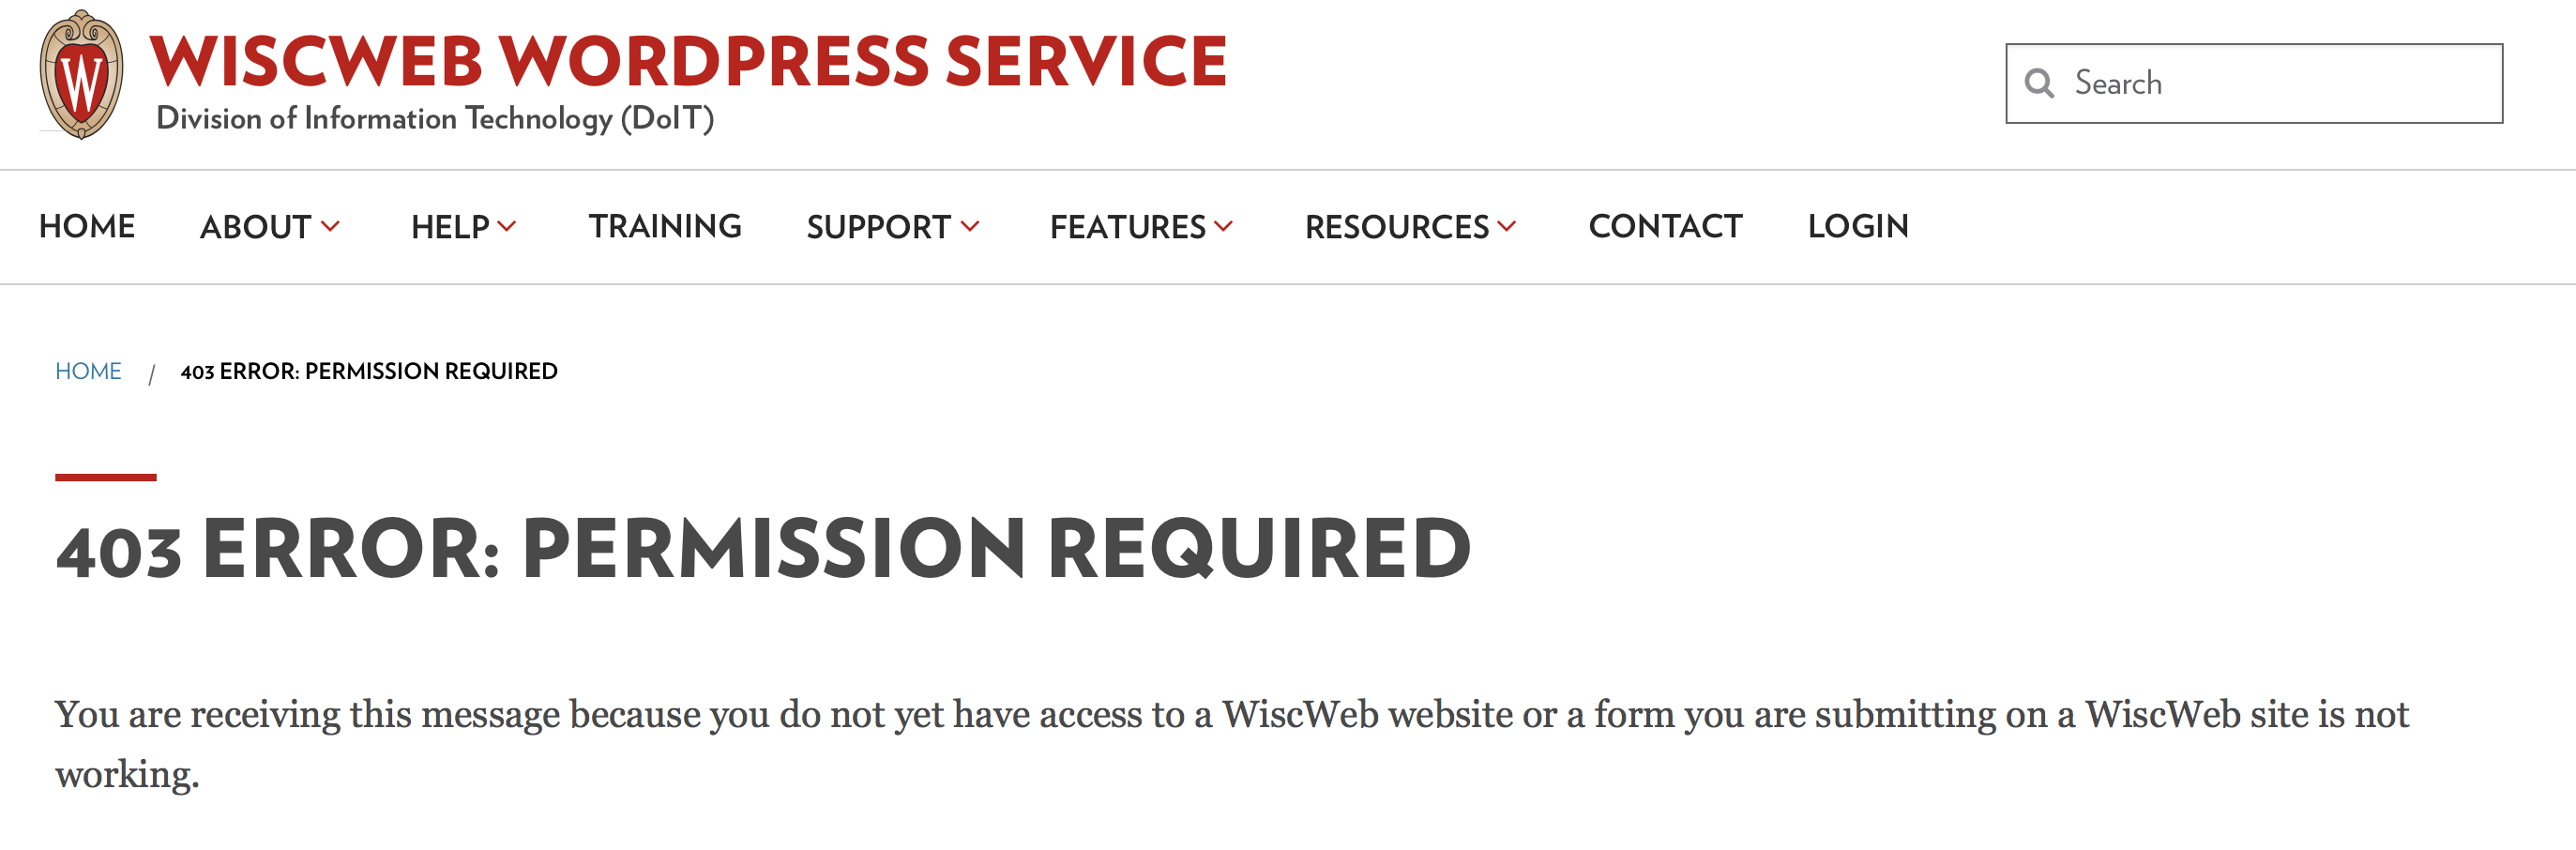 403 Error Message in WiscWeb